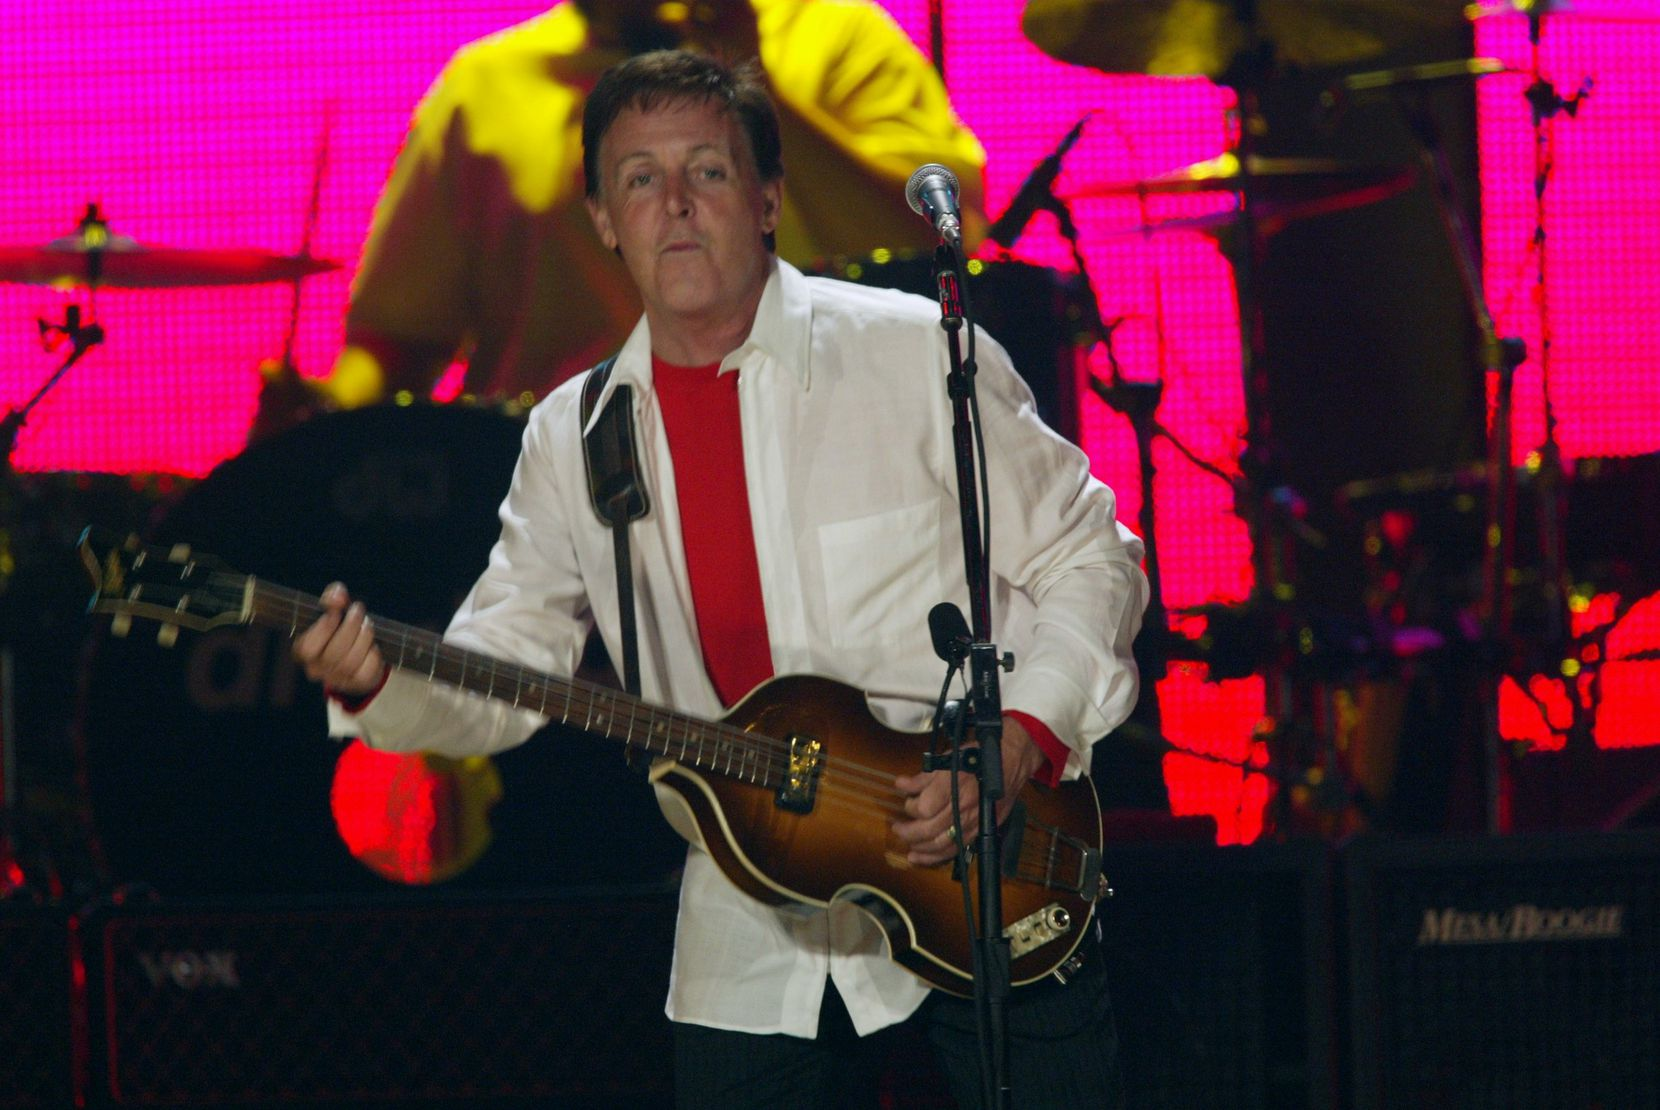 Former Beatle Paul McCartney in concert at Reunion Arena in 2002.